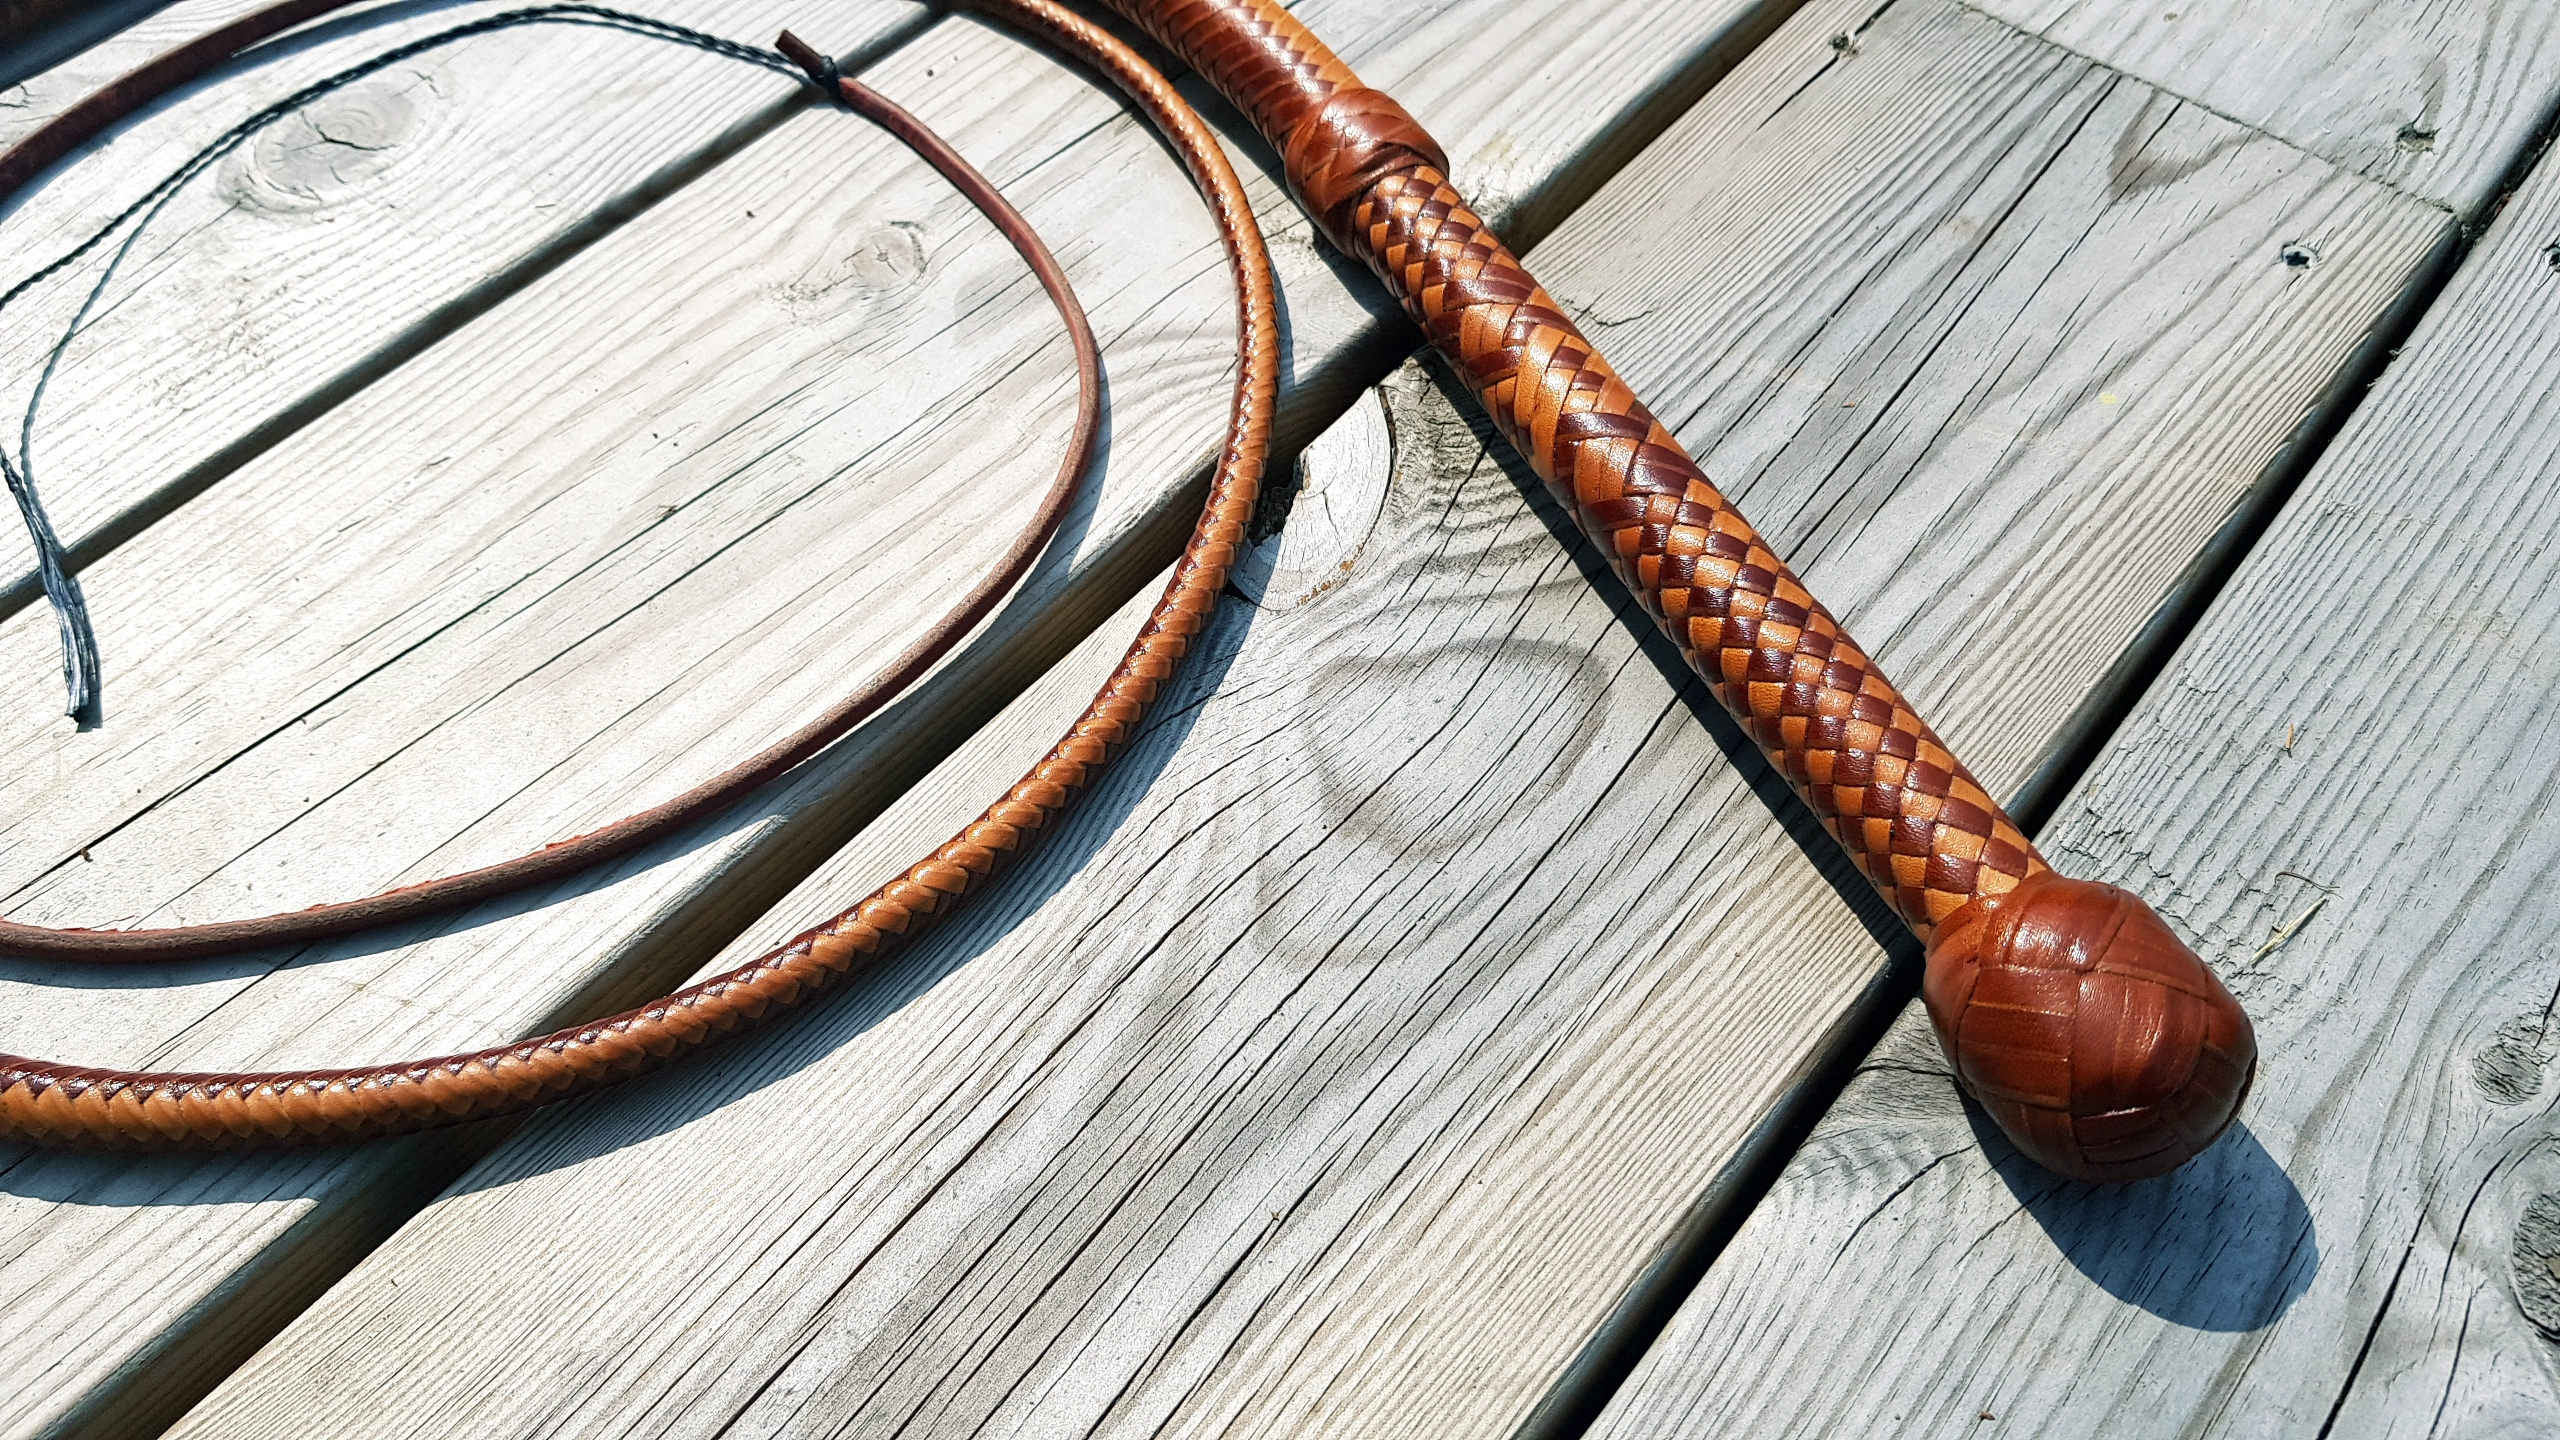 Bullwhip handle Turks head knot